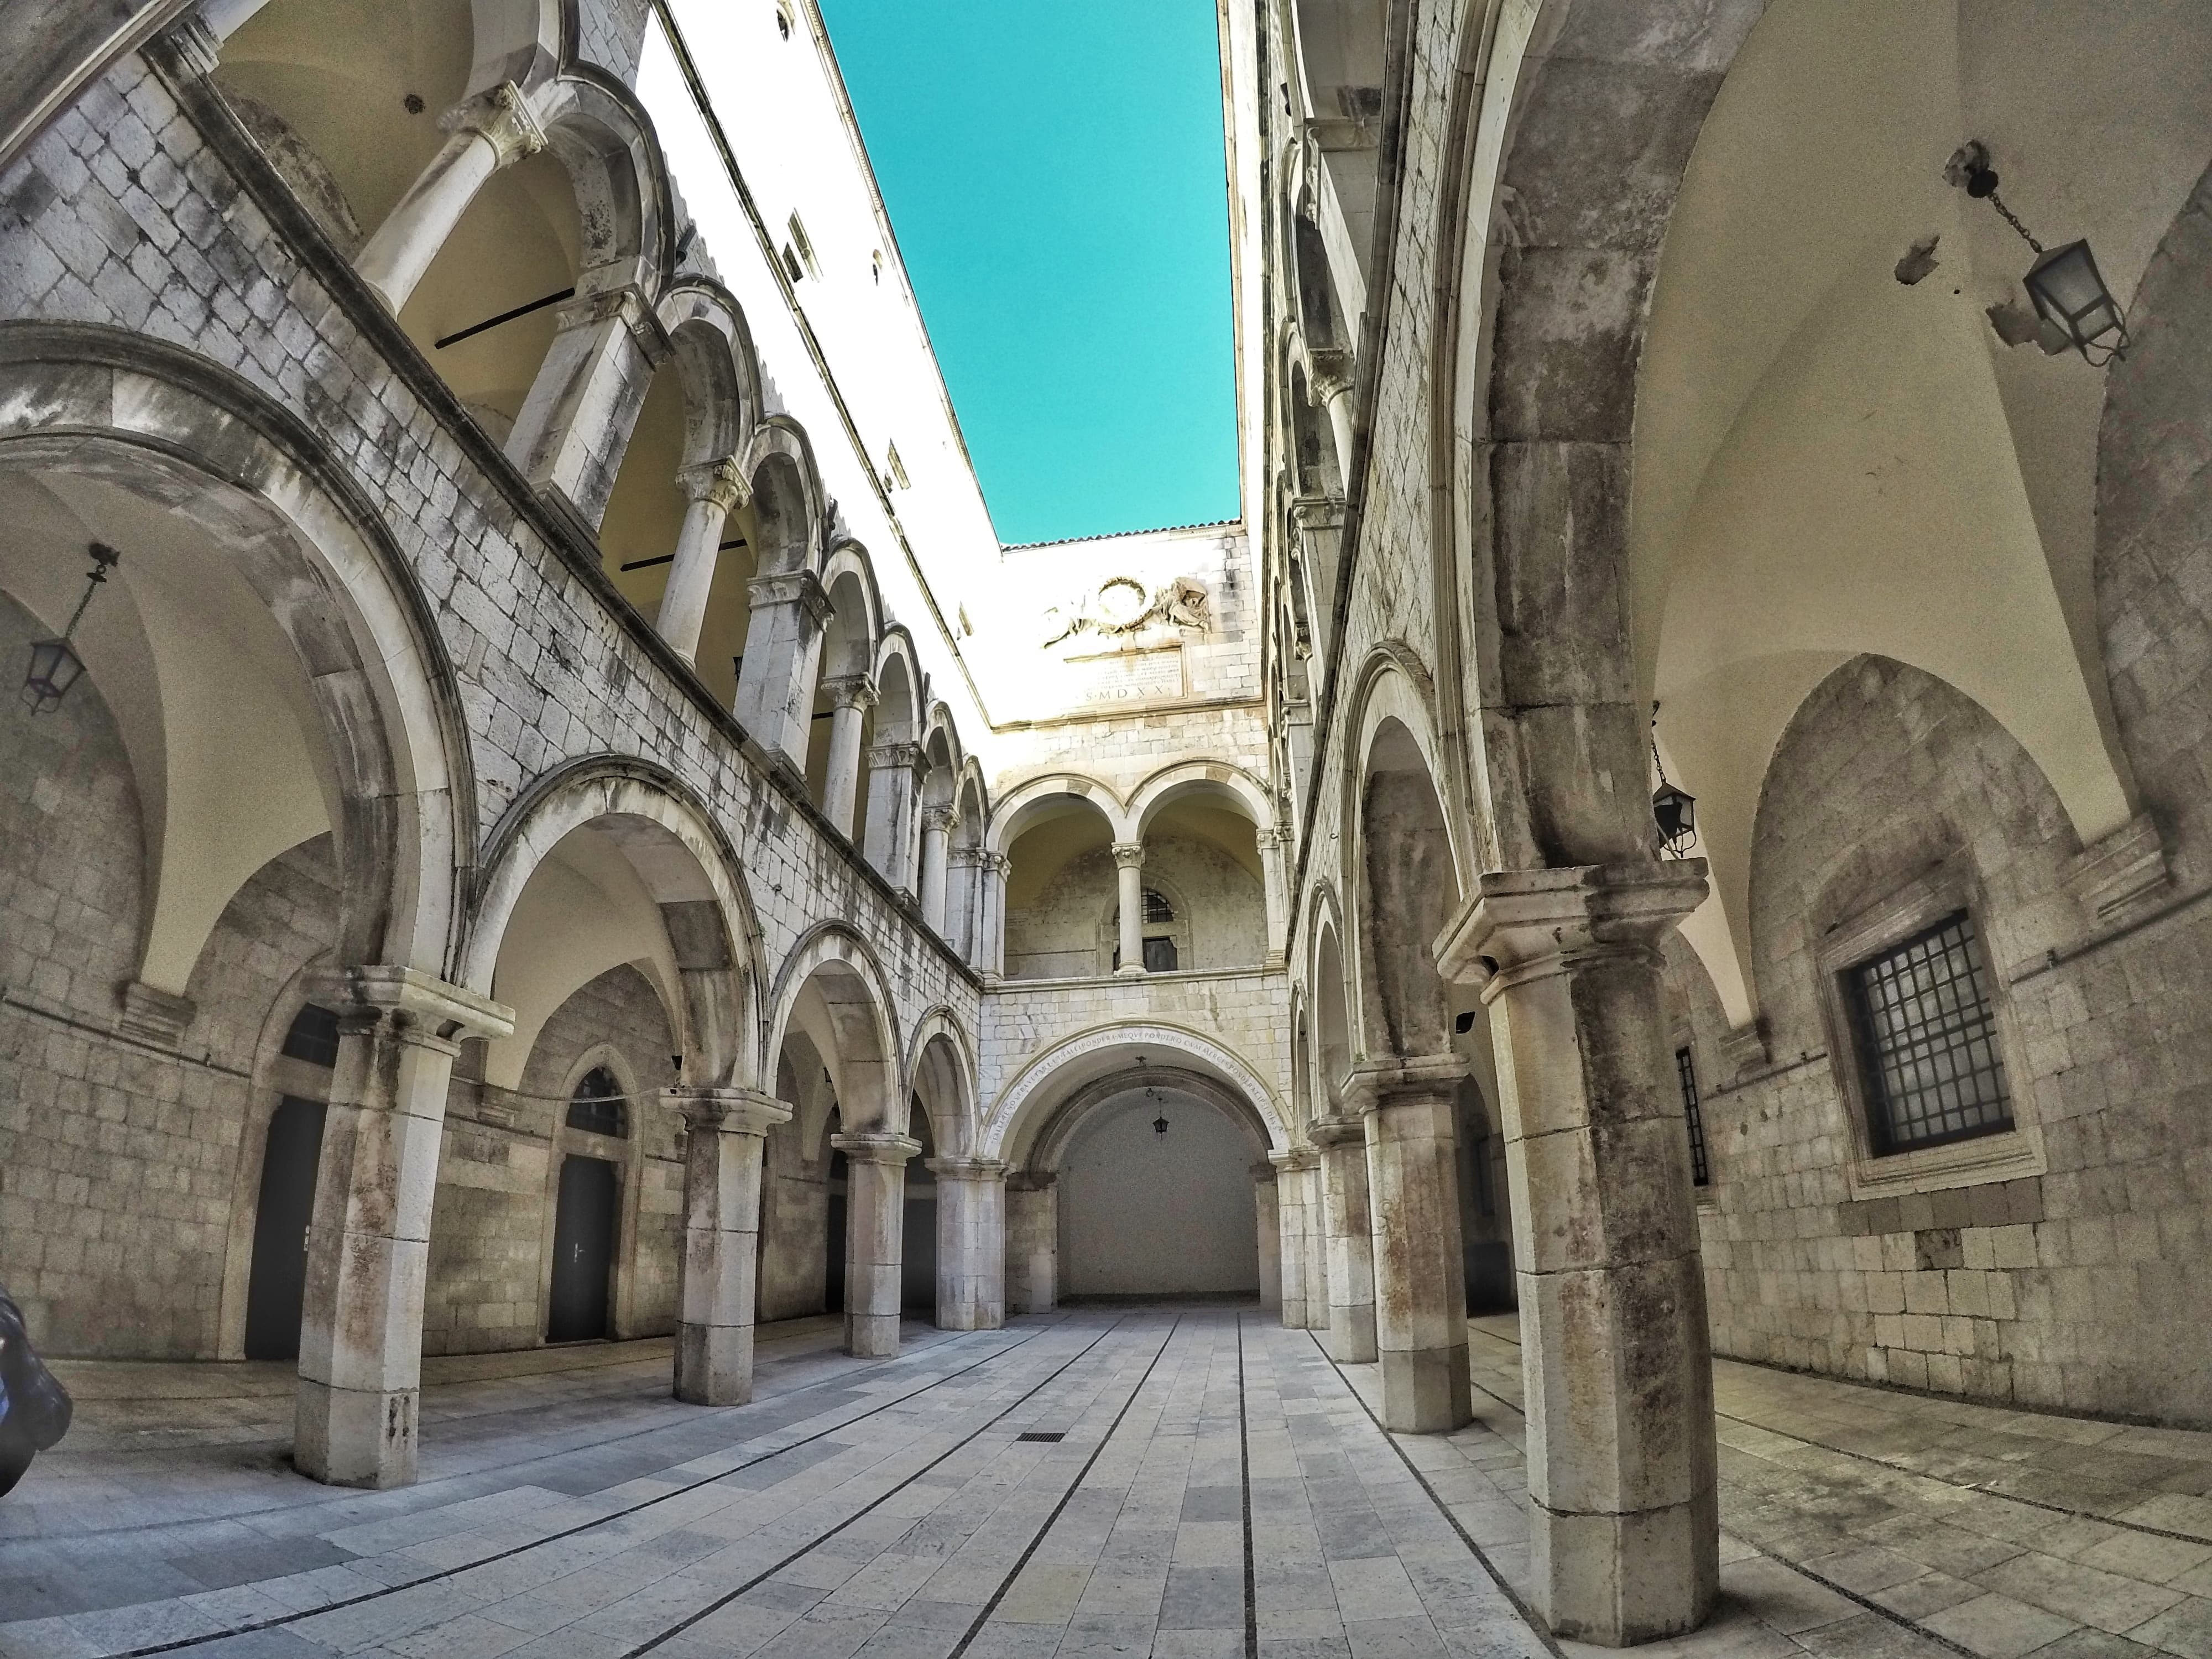 Sponza Palace - Top Things To Do In Dubrovnik in a day